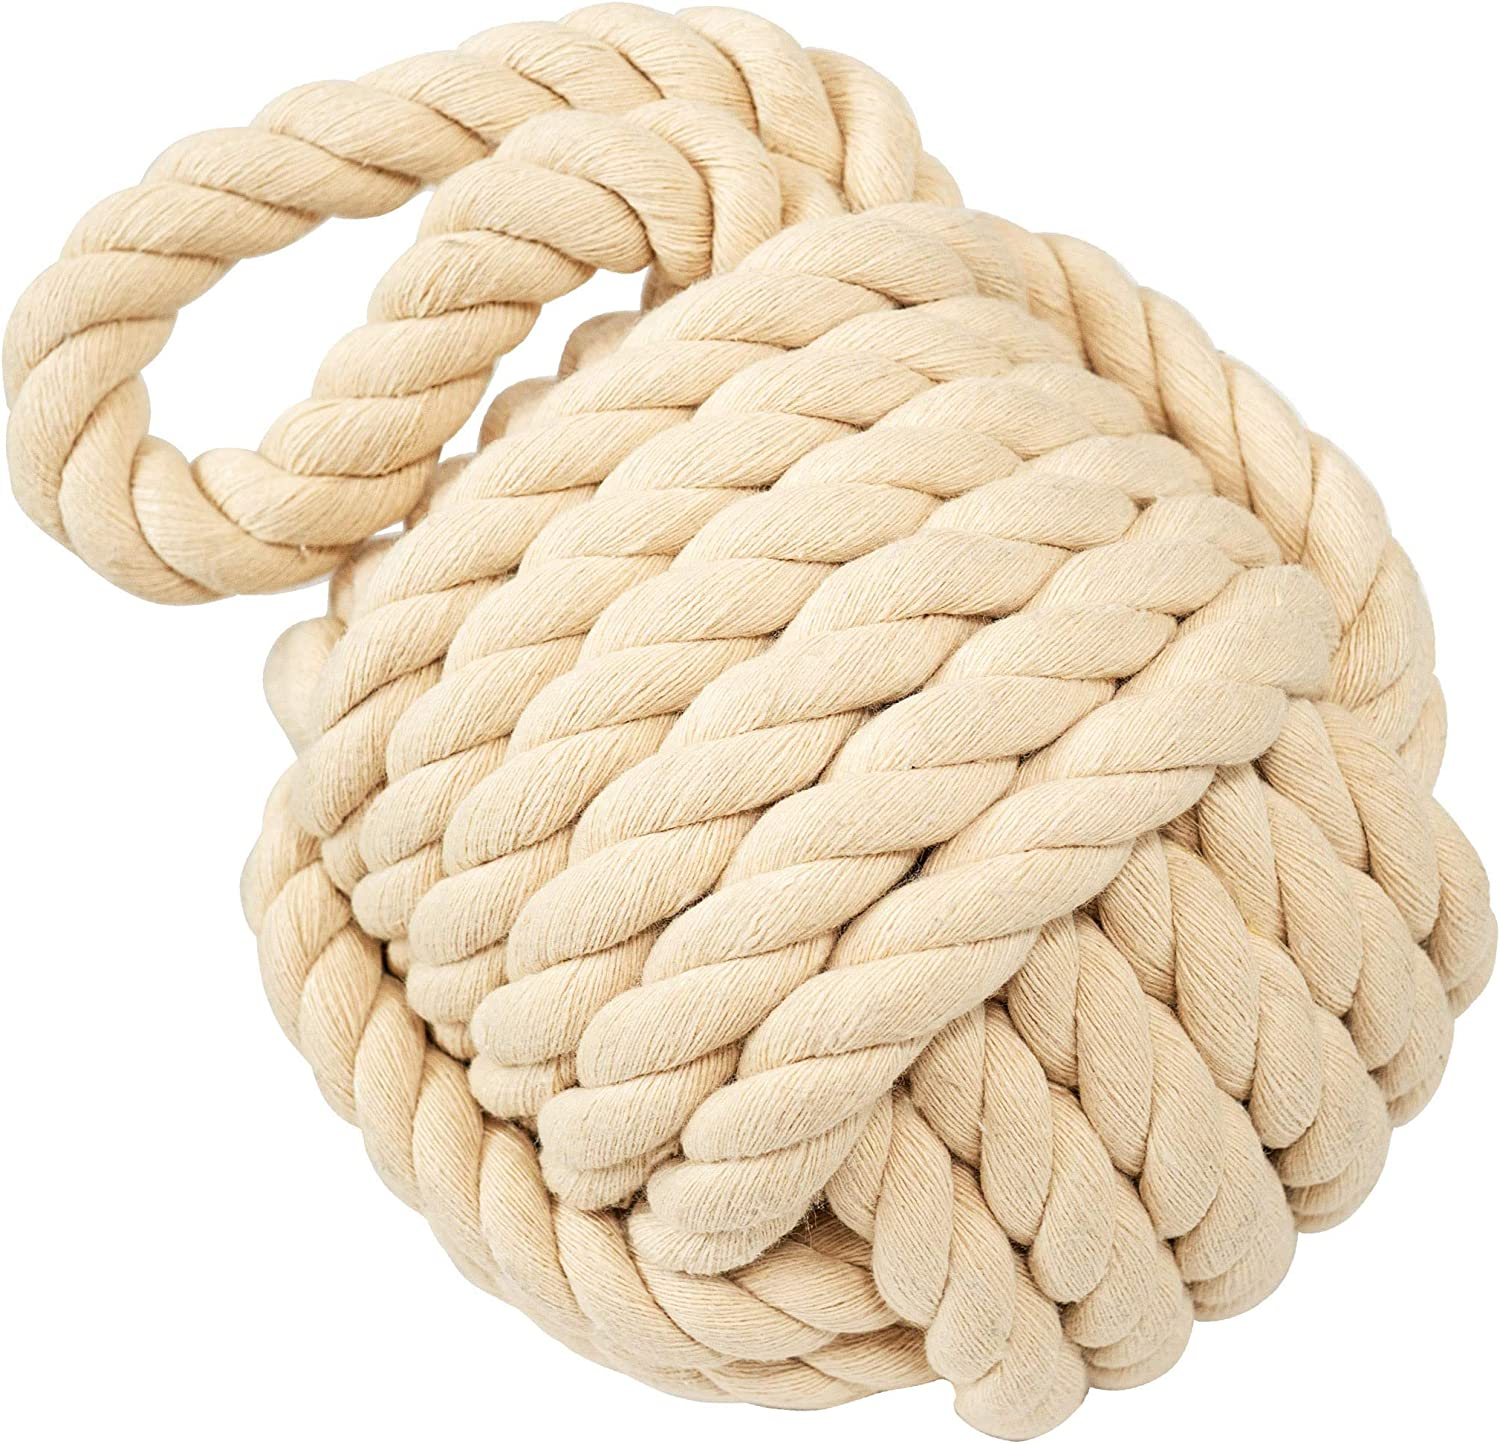 Golant Rope Knot Doorstop At the price of surprise Nautical Decorative Comple Large Heavy In a popularity